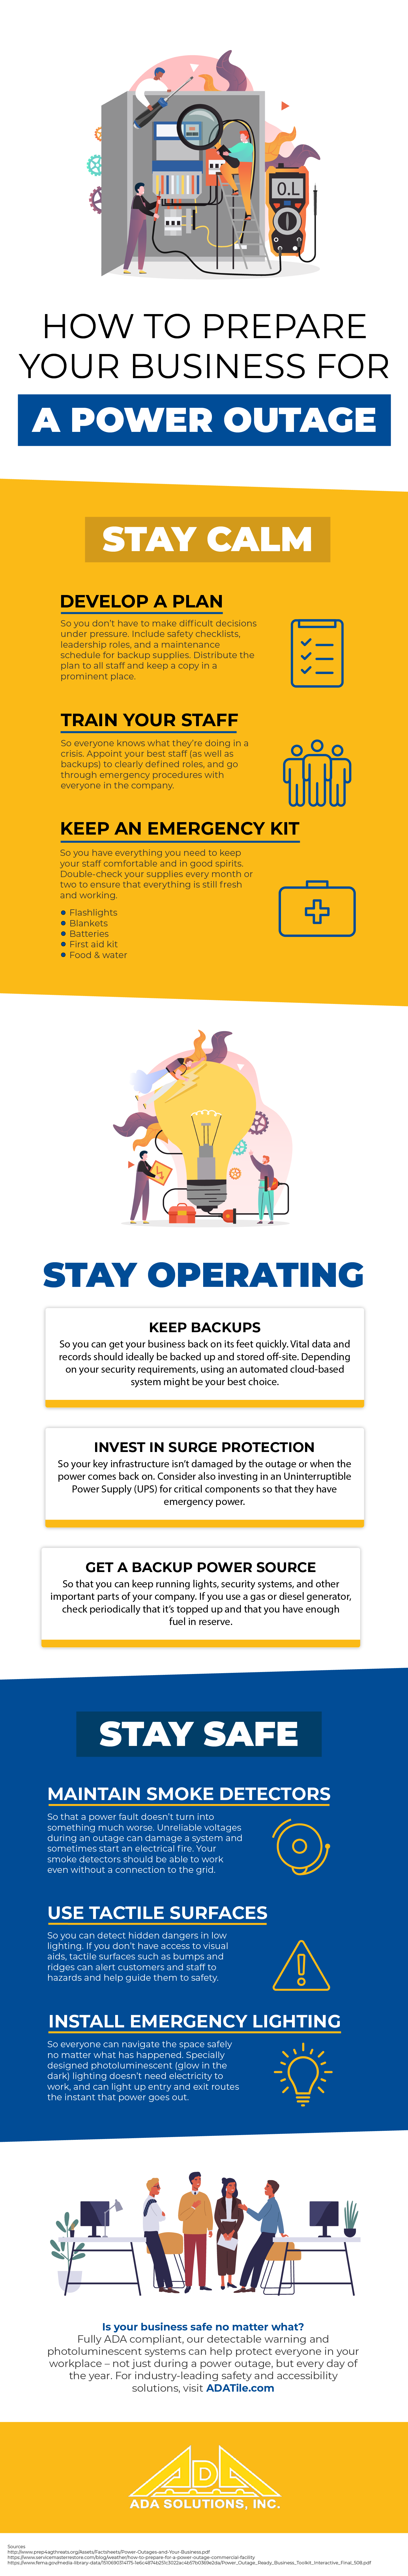 How to Prepare Your Business for a Power Outage (Infographic)